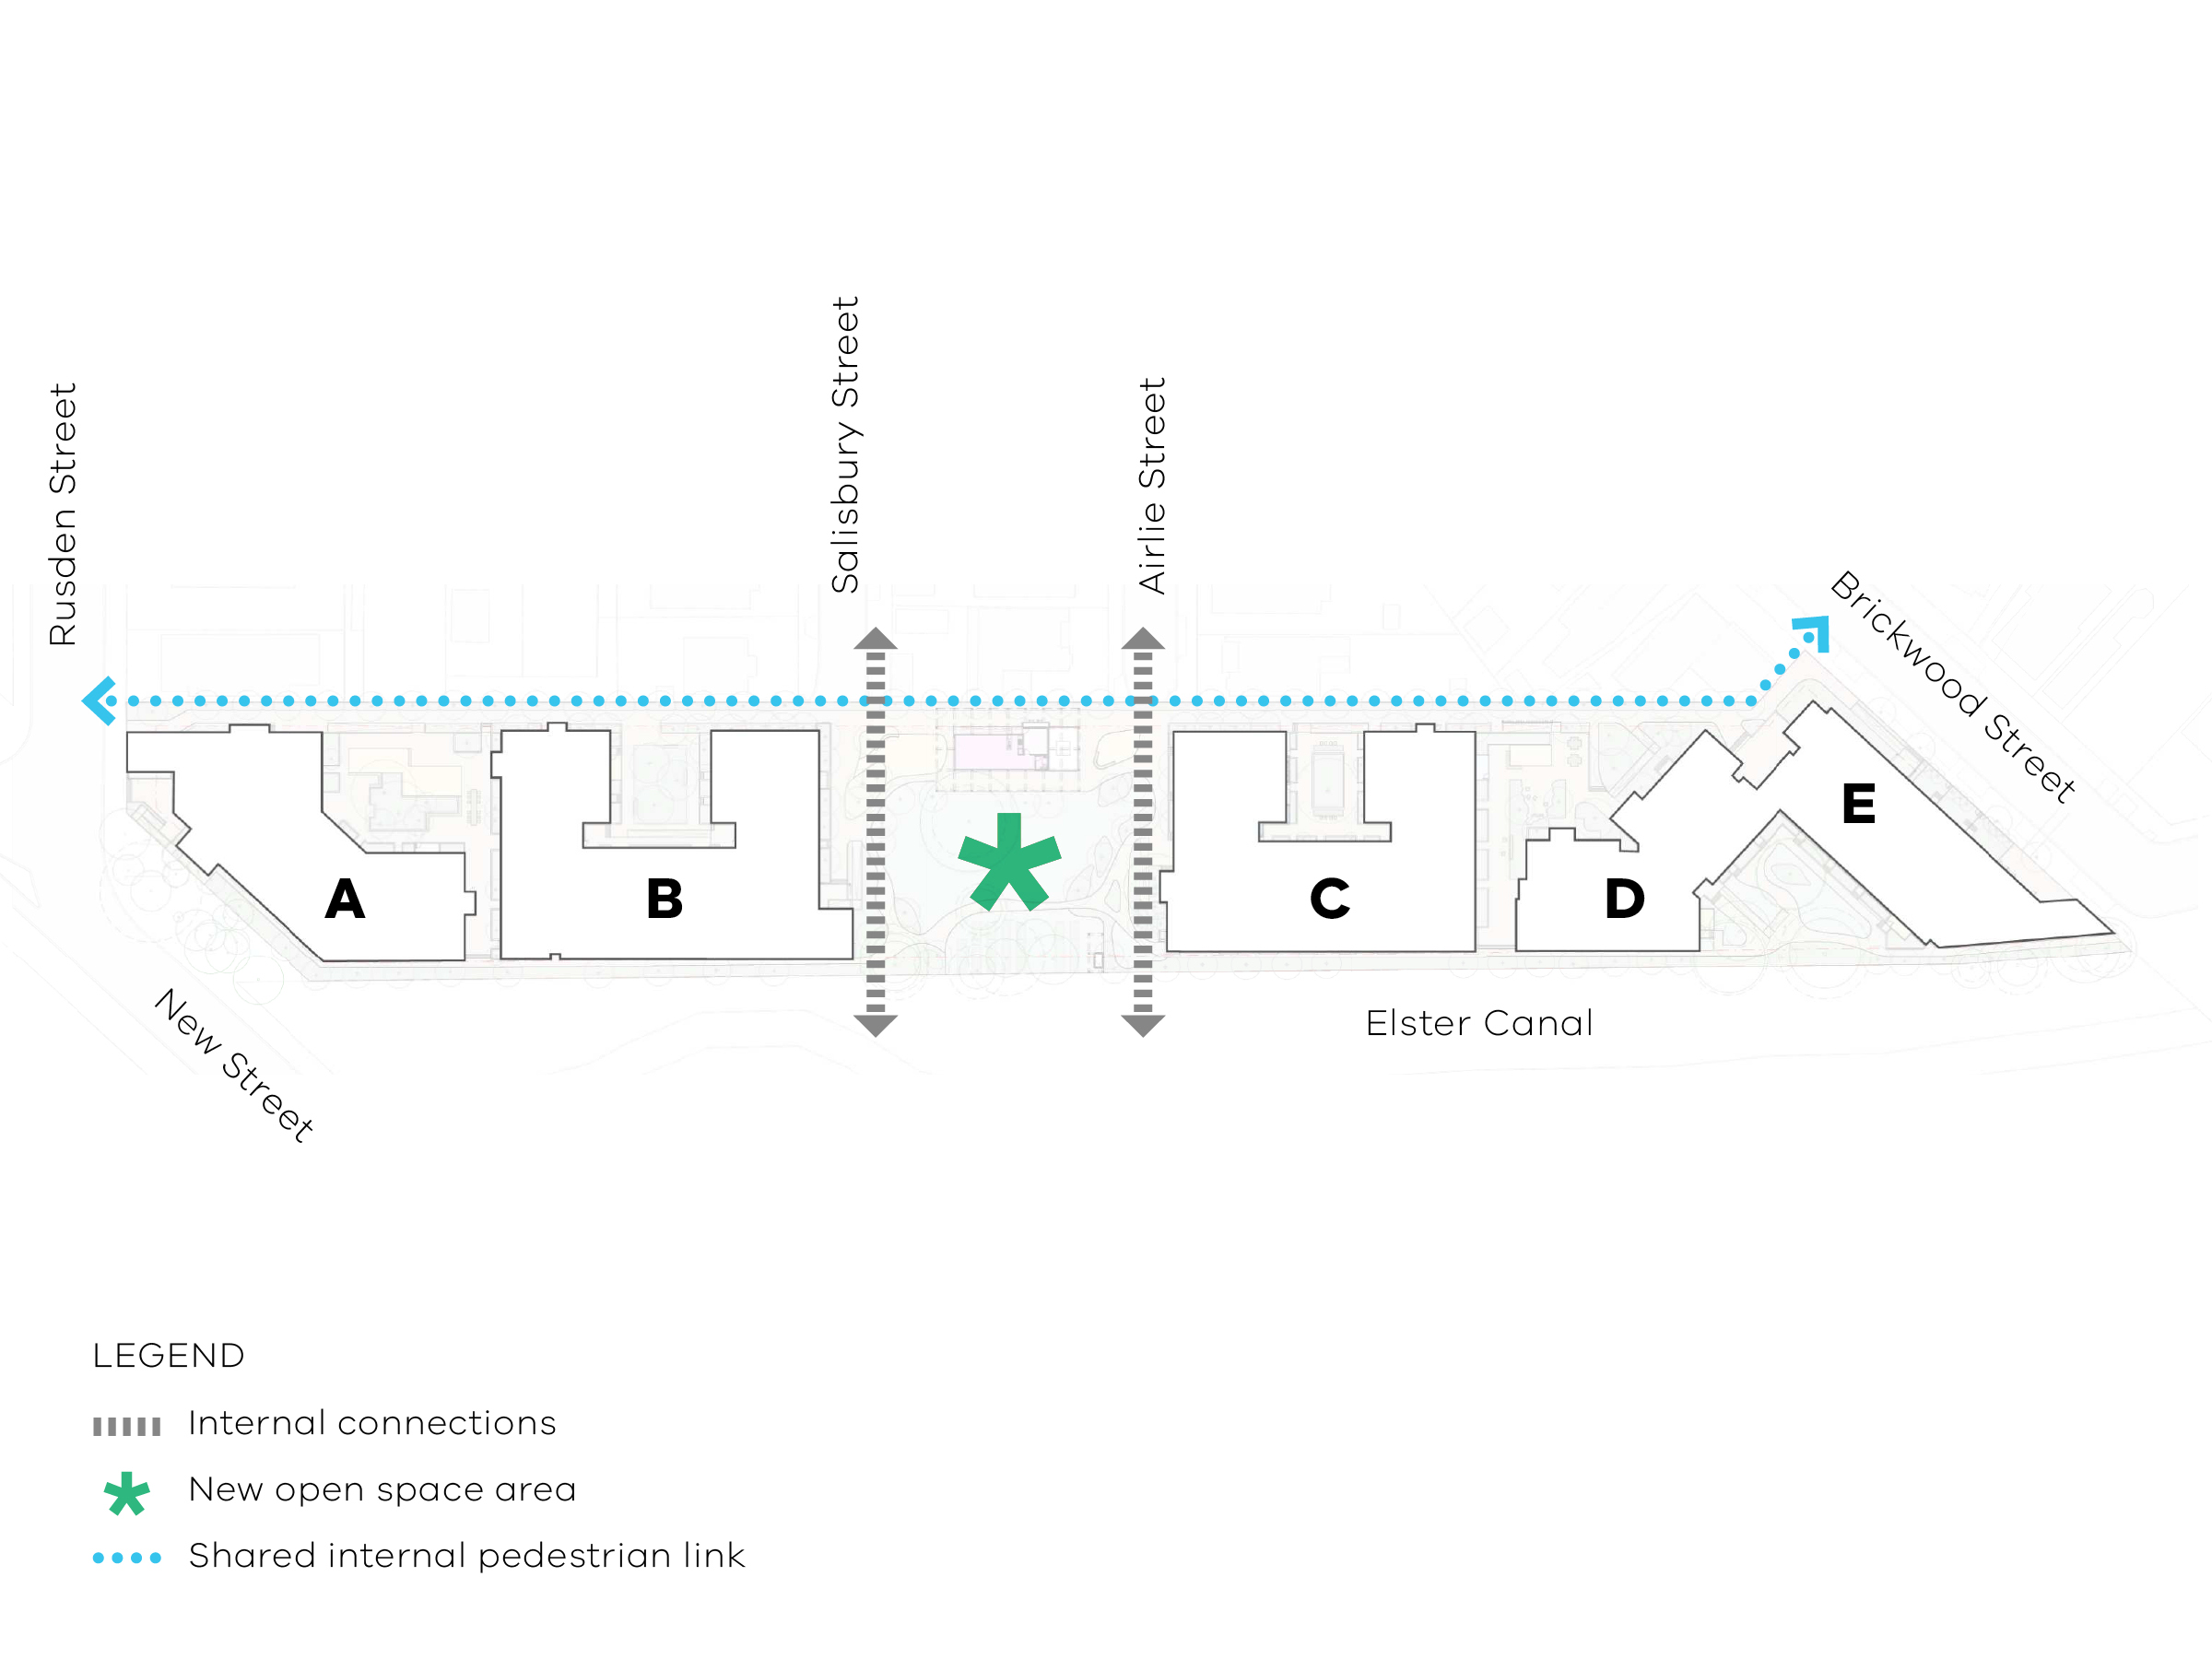 Map showing the connections in the new development plan. A shared internal pedestrian links runs between Rusden Street and Brickwood Street on the north-eastern side of the site. 2 Internal connections run east to west between Elster Canal and Salisbury S